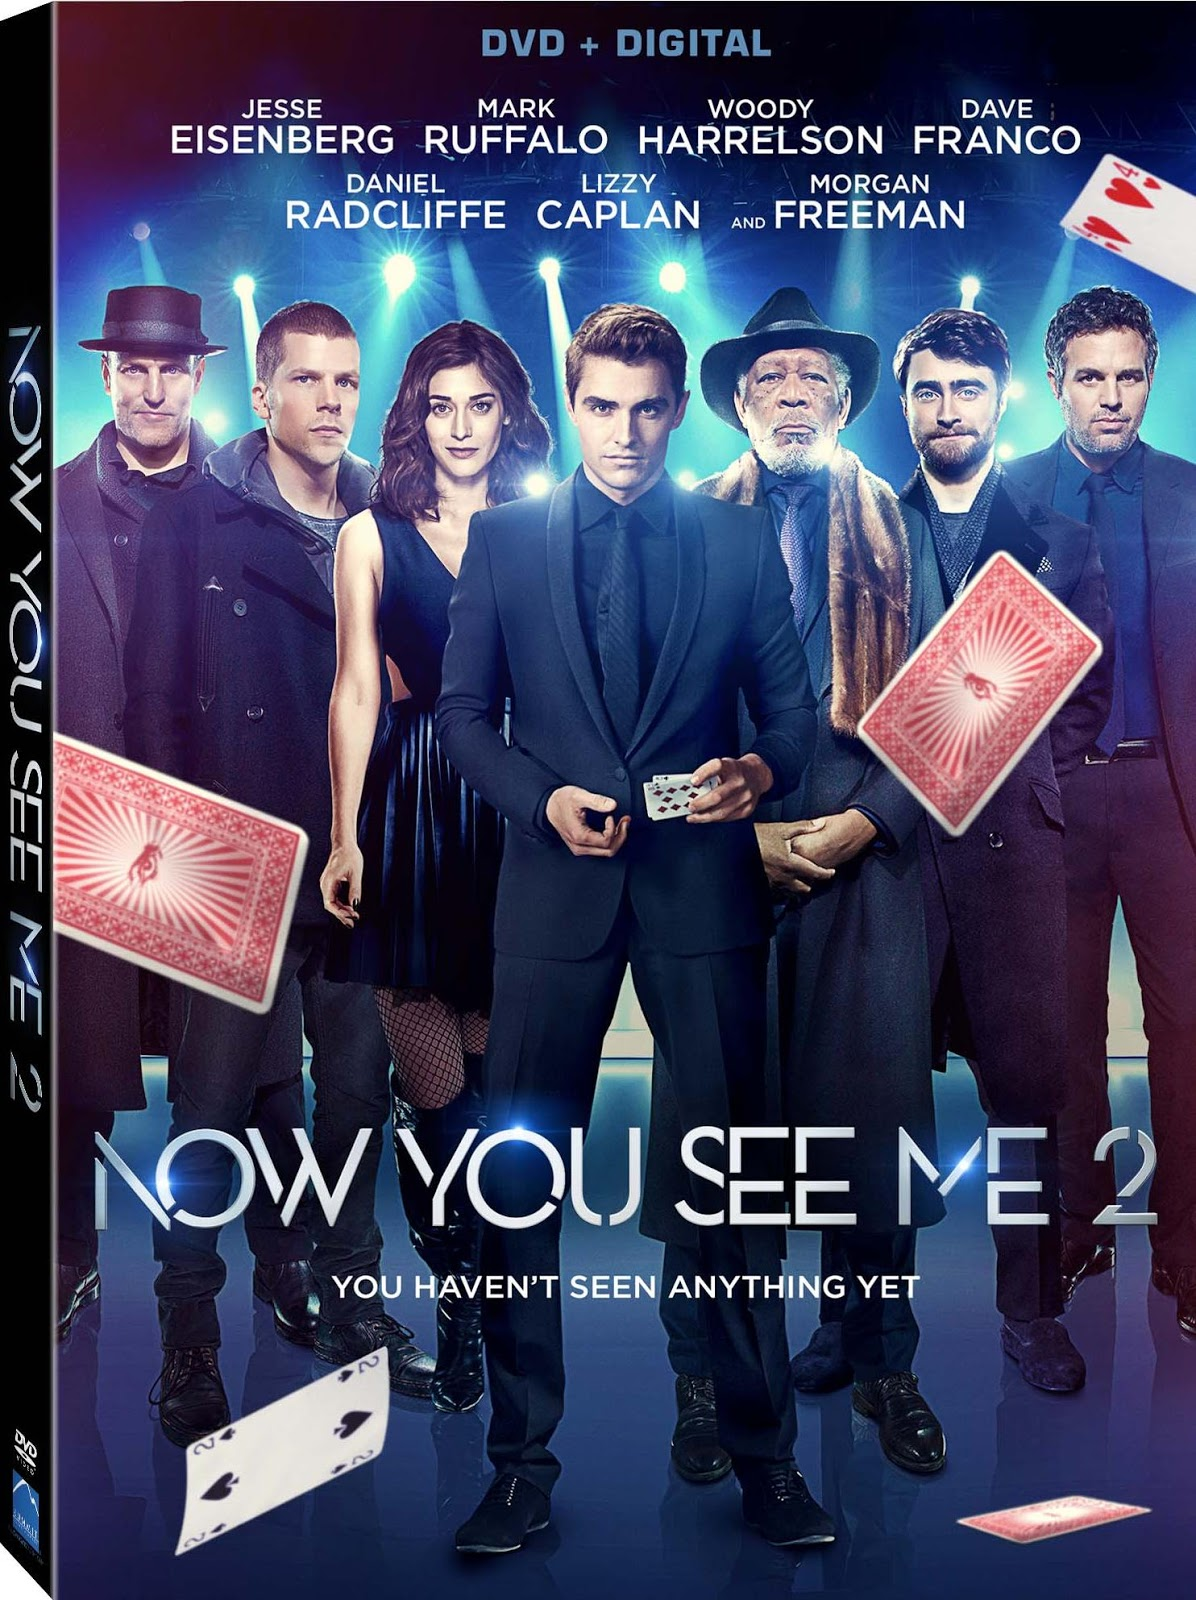 Watch now you see me 2 with english subtitles